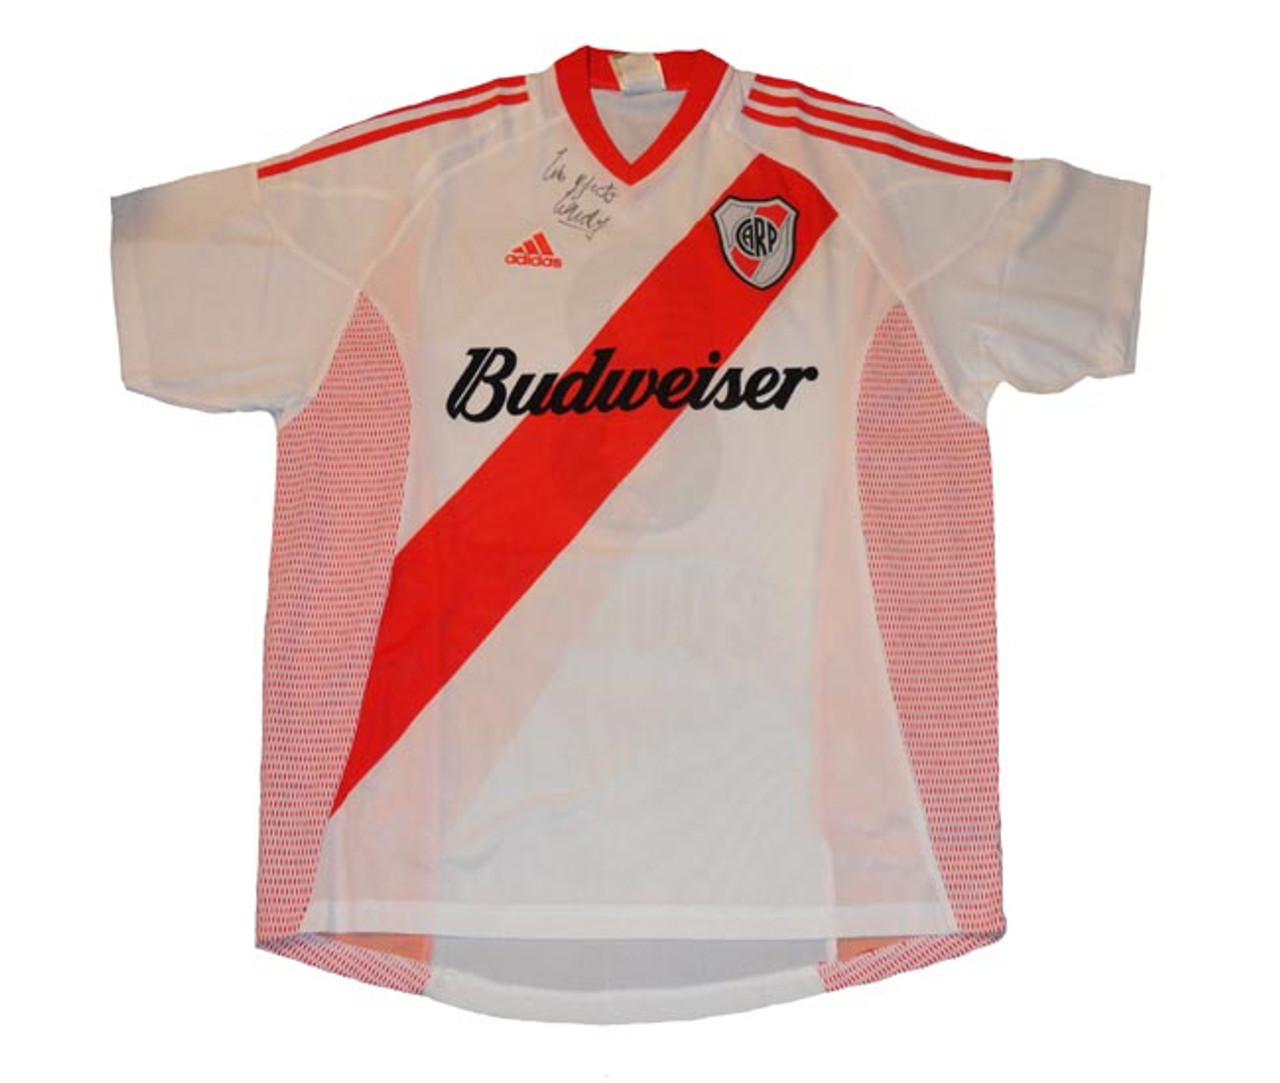 36a81d8c8 ADIDAS RIVER PLATE 2004 HOME JERSEY - Soccer Plus